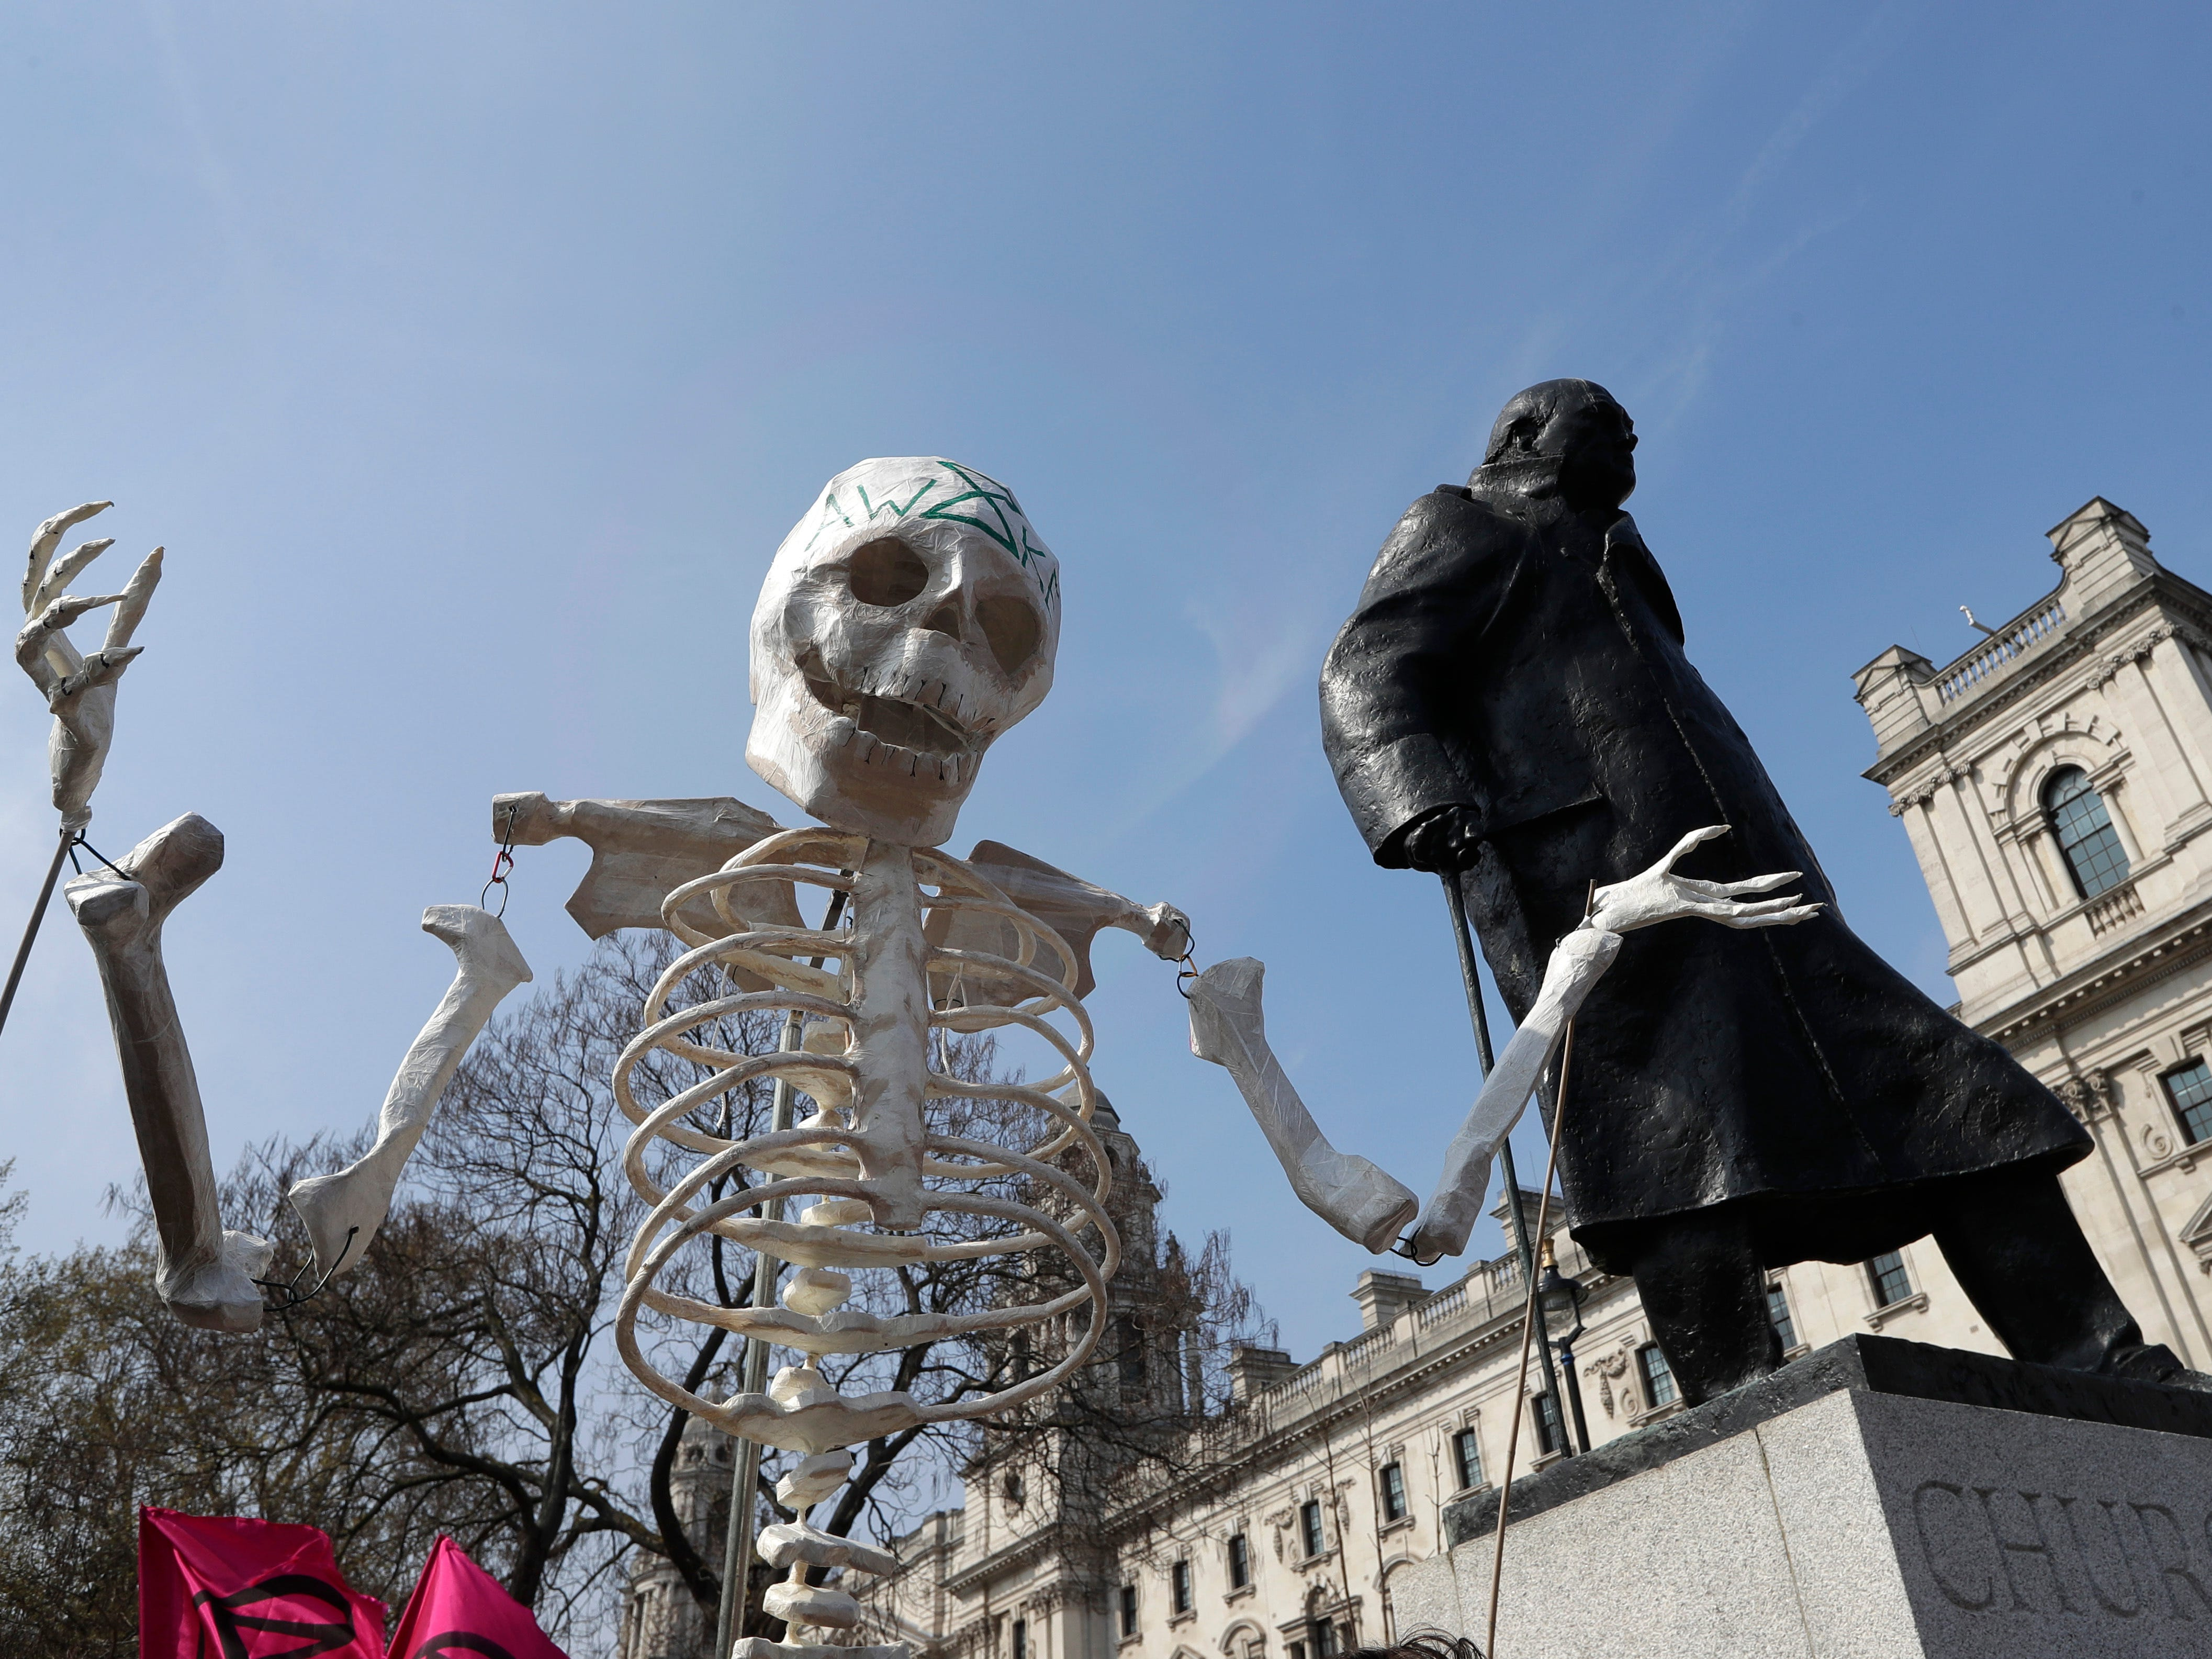 A skeleton is carried past the Winston Churchill statue as demonstrators take part in a 'Funeral Procession' during a climate protest in Parliament Square in London, Monday, April 15, 2019. Extinction Rebellion have organised a nationwide week of action, they are calling for a full-scale Rebellion to demand decisive action from governments on climate change and ecological collapse. They plan to engage in acts of non-violent civil disobedience against governments in capital cities around the world.